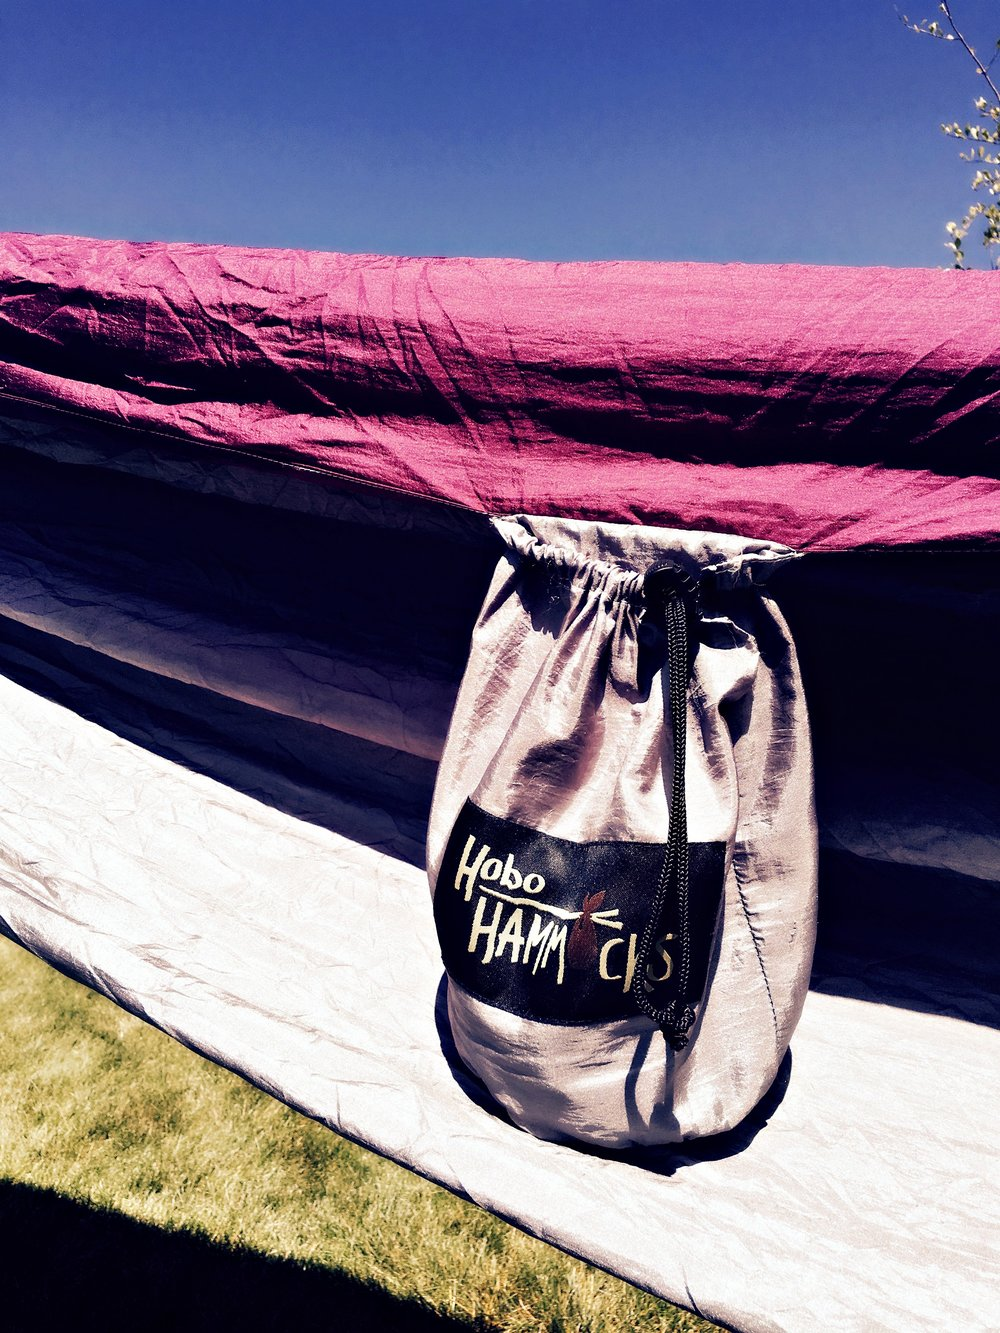 hobo hammock stuff sack